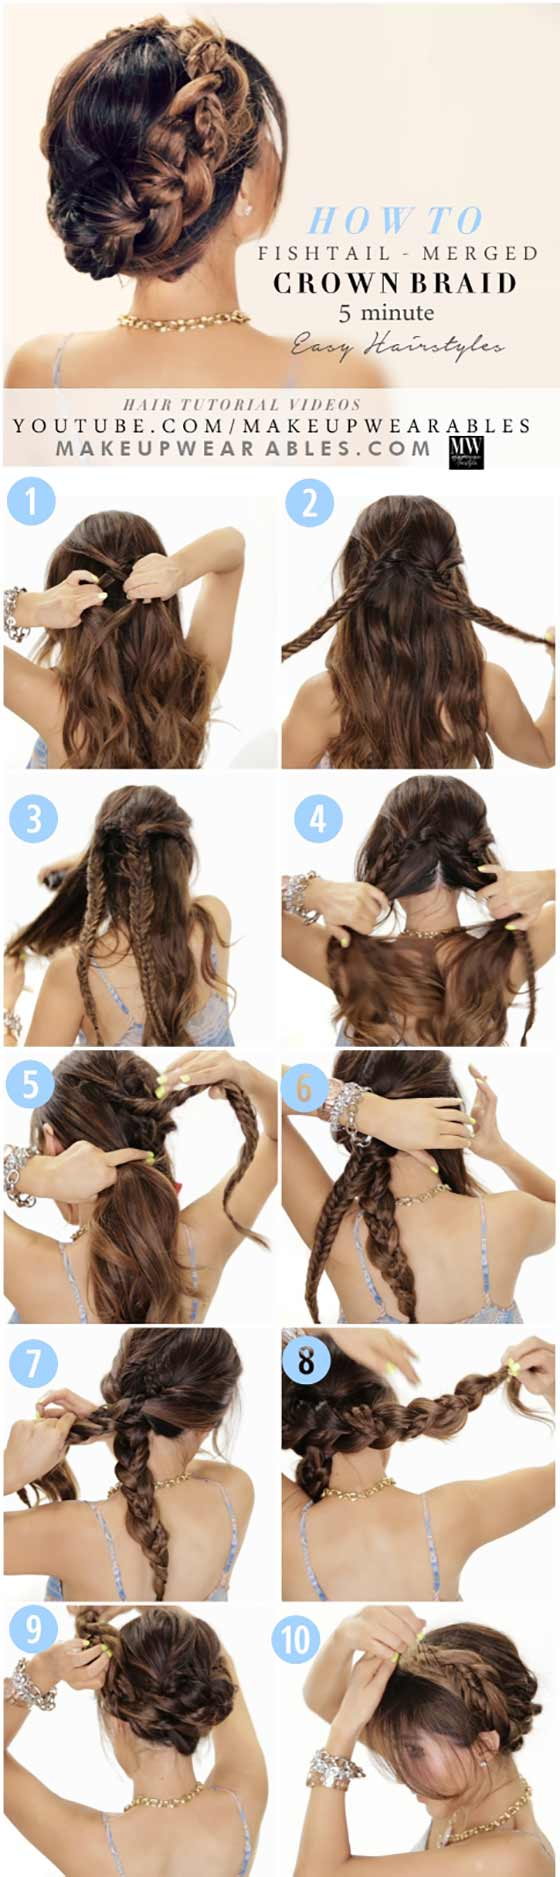 Wondrous 40 Braided Hairstyles For Long Hair Natural Hairstyles Runnerswayorg